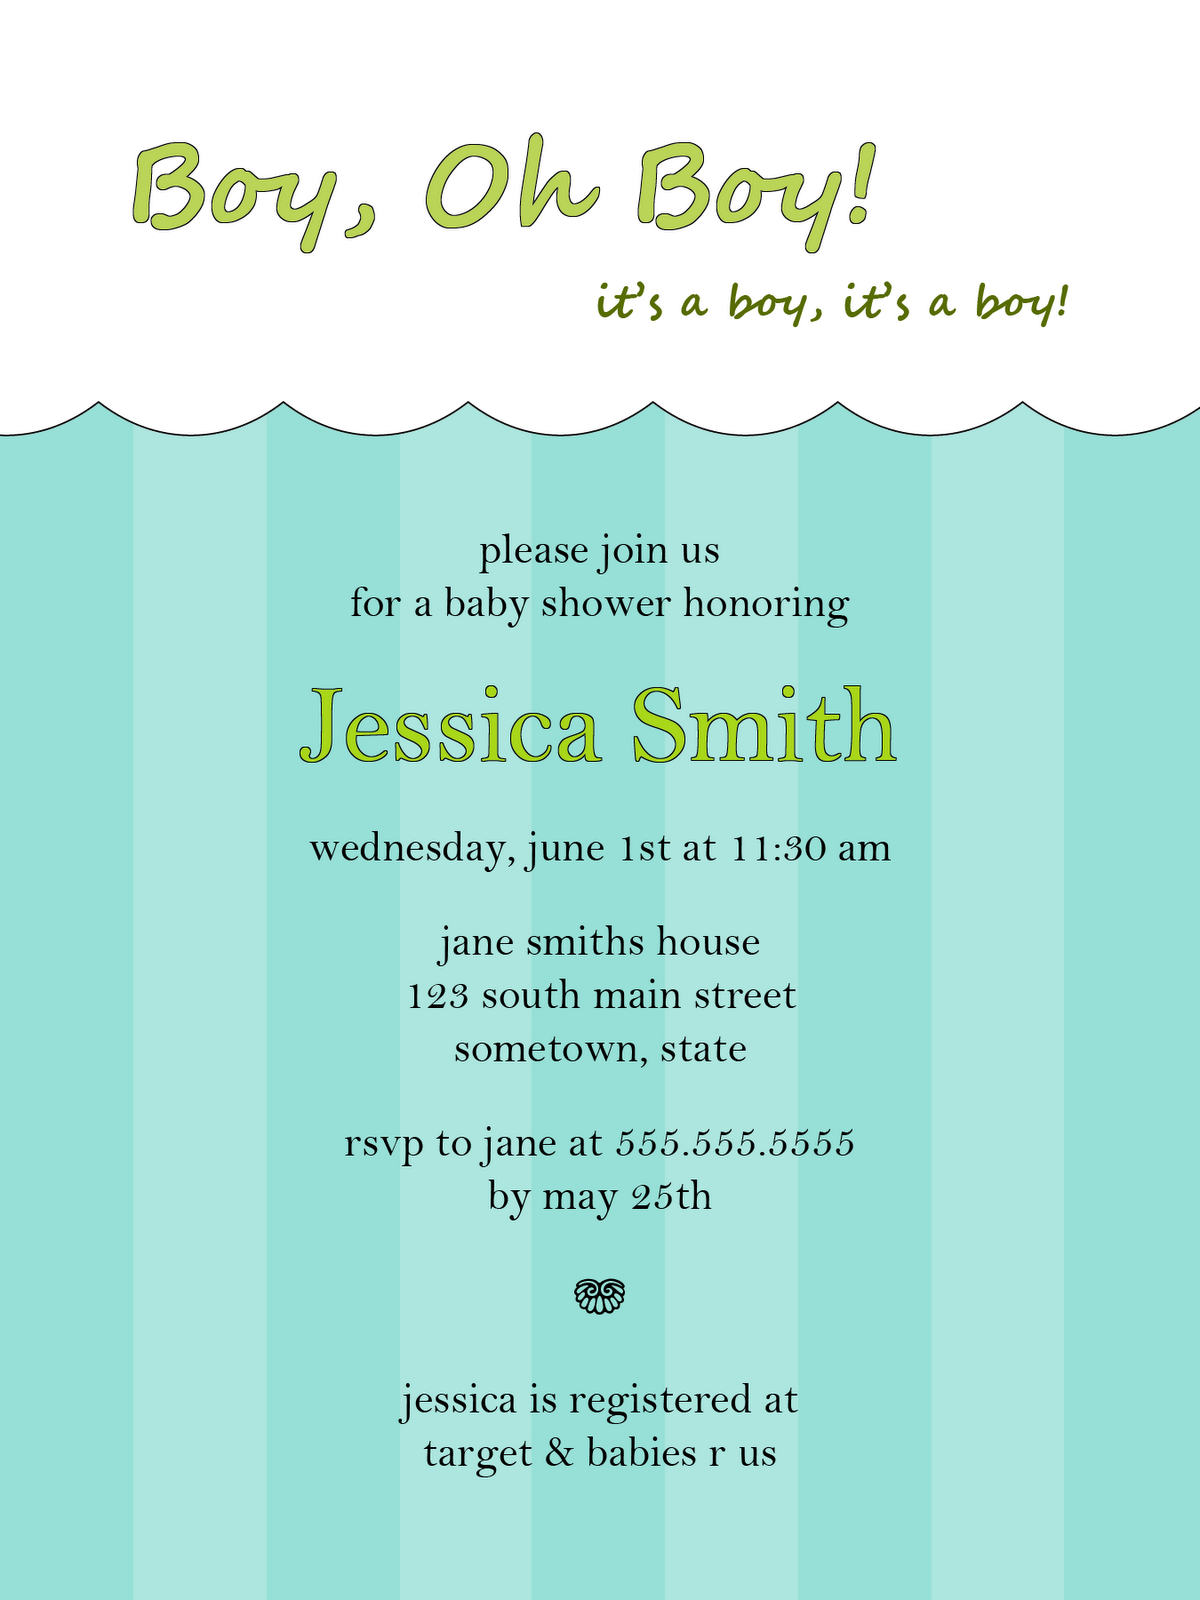 Free Shower Invitation Templates baby boy card source freepik – Email Baby Shower Invitation Templates